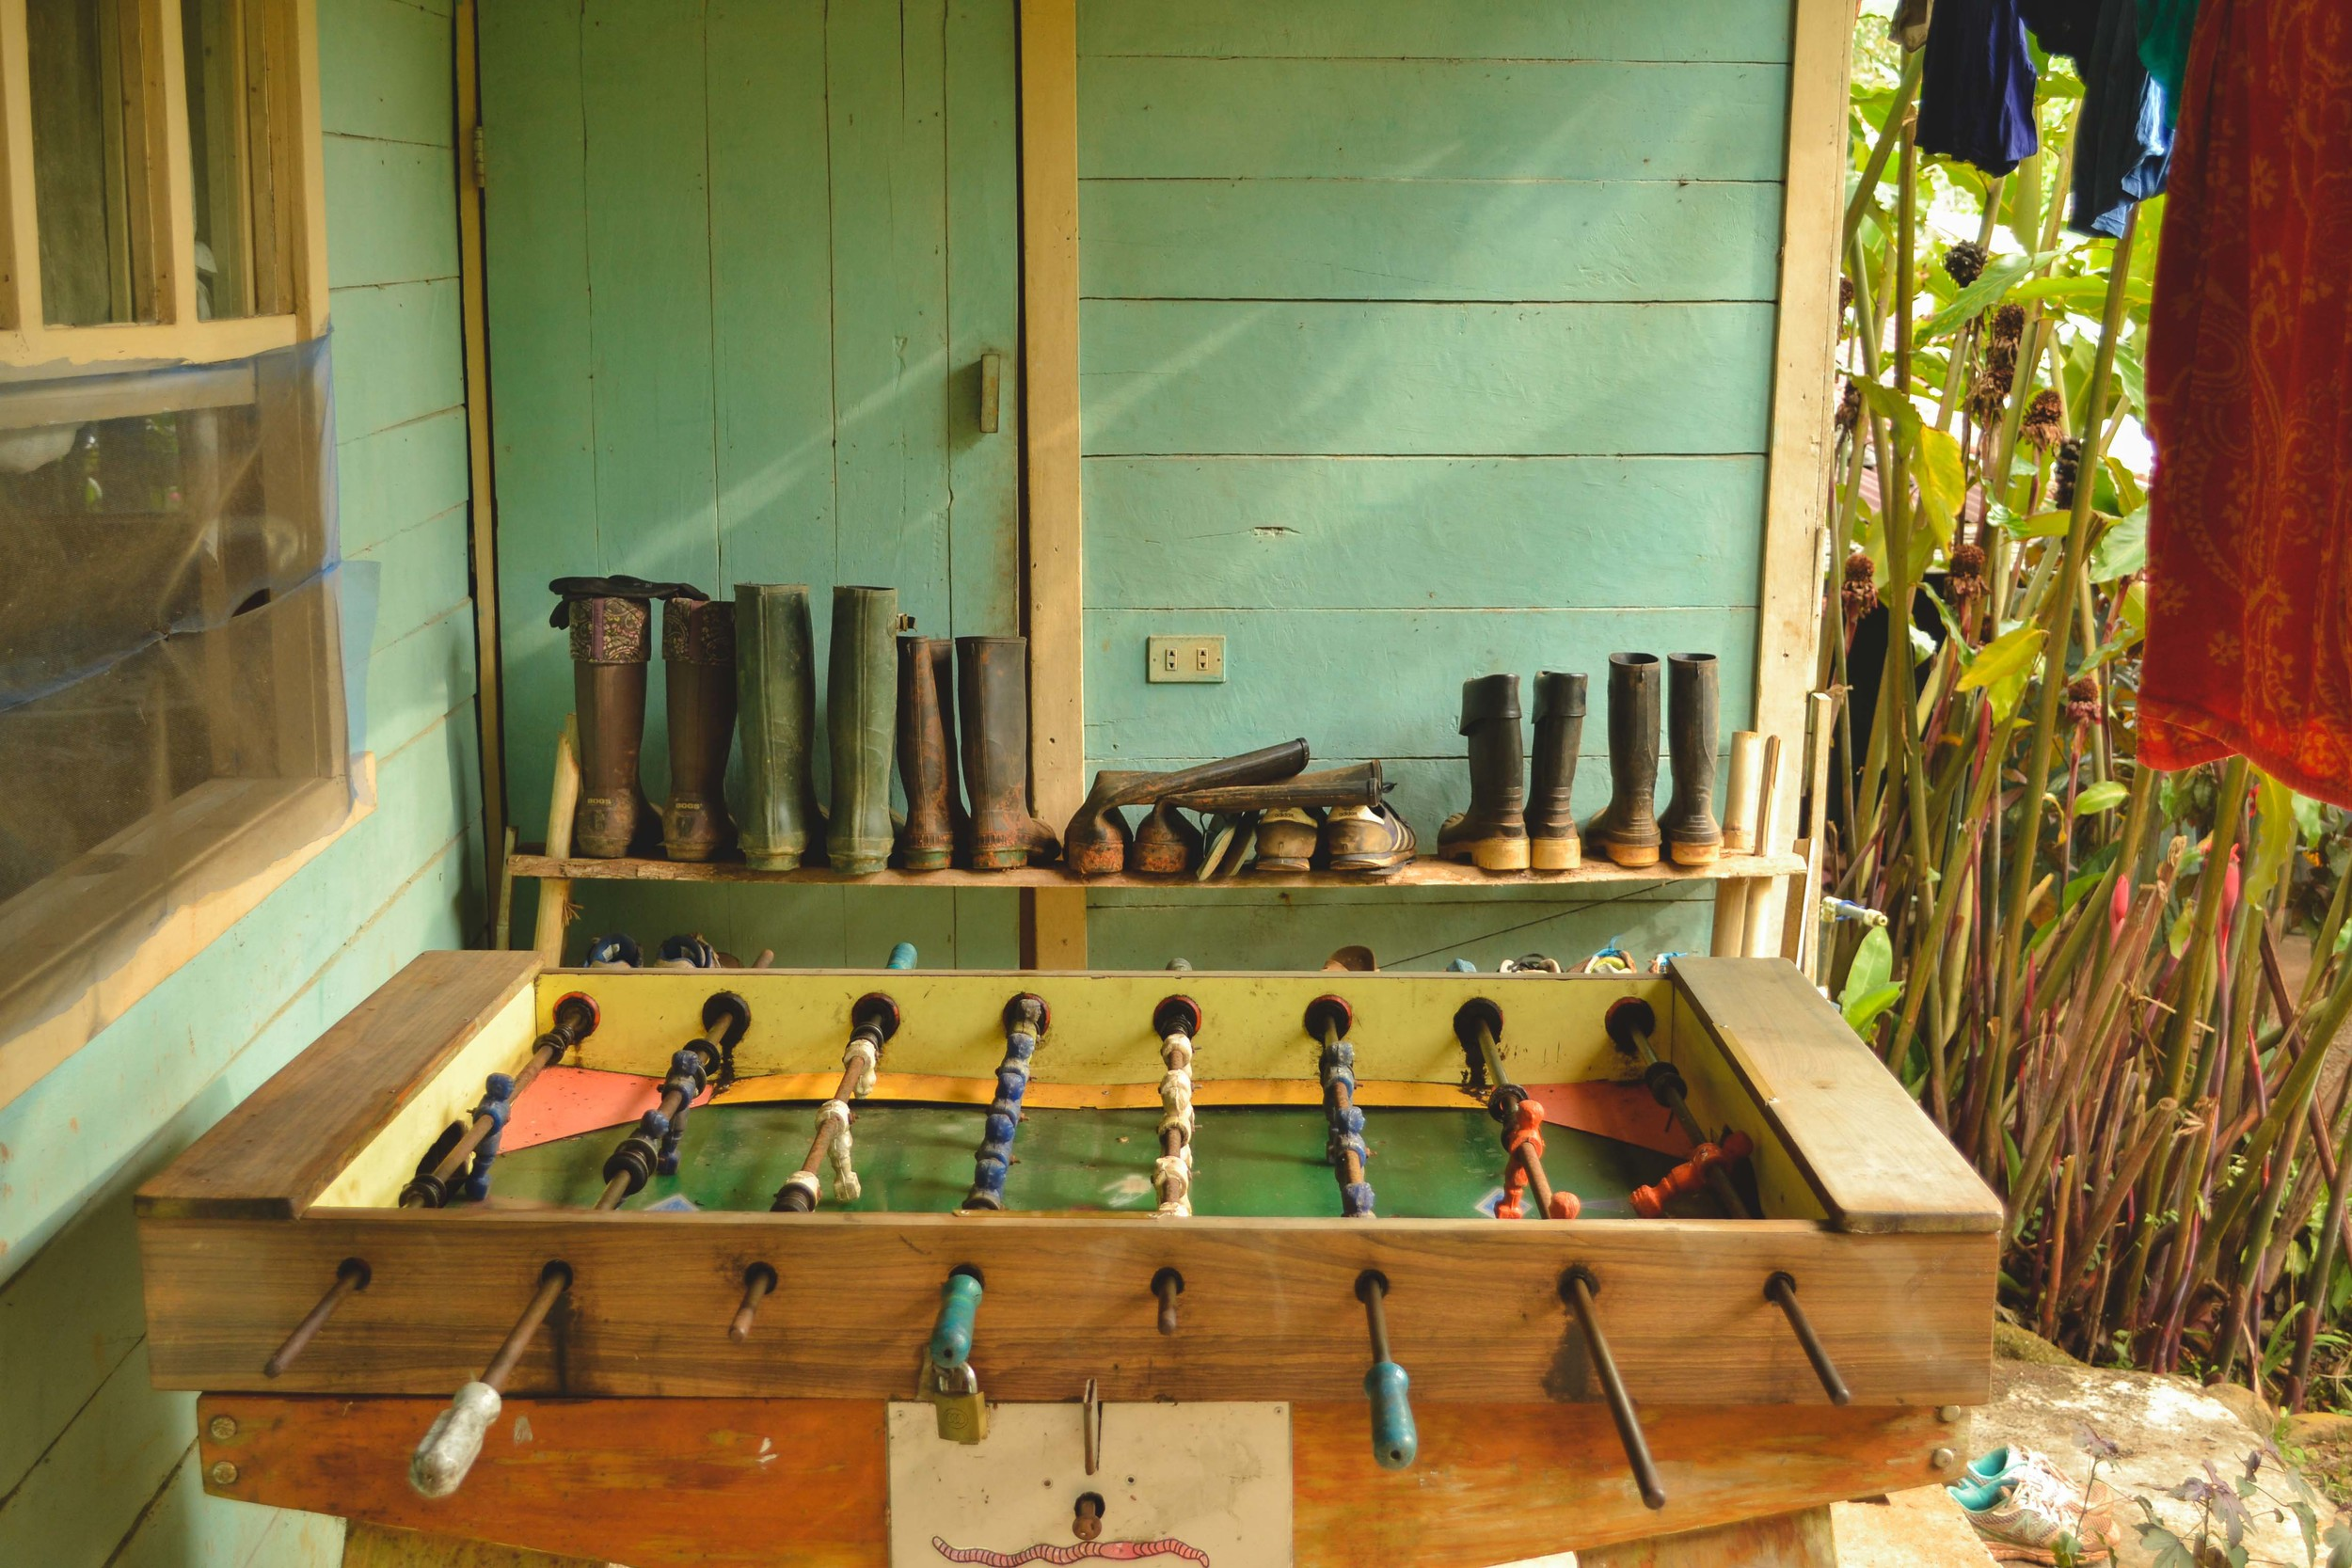 Volunteers' boots arranged near the volunteers' dorm and the foosball table